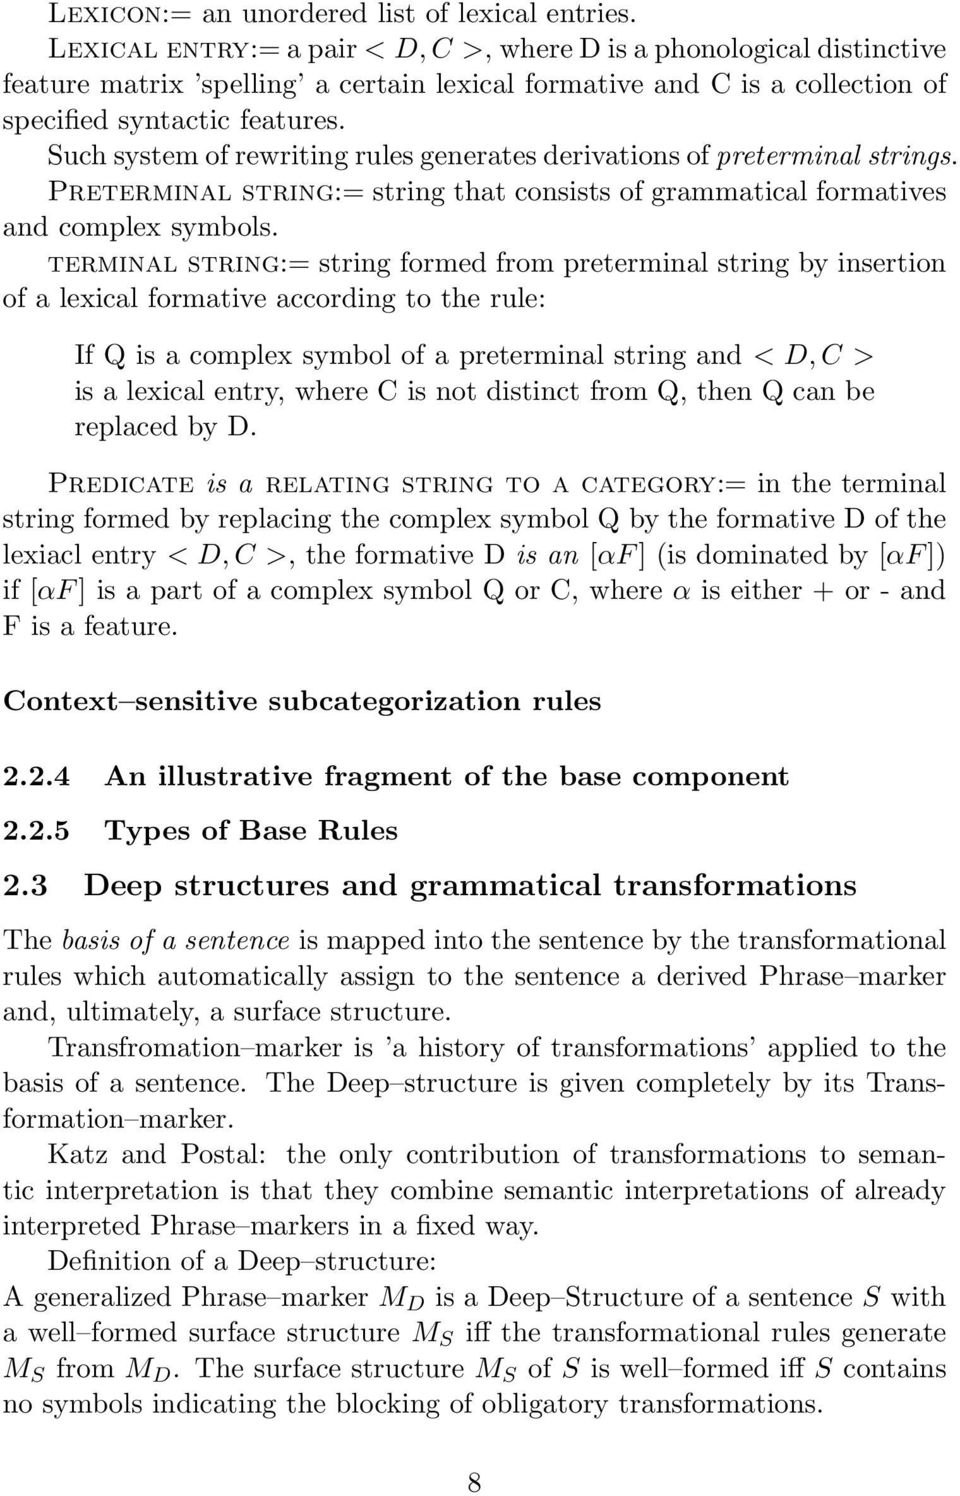 Such system of rewriting rules generates derivations of preterminal strings. Preterminal string:= string that consists of grammatical formatives and complex symbols.